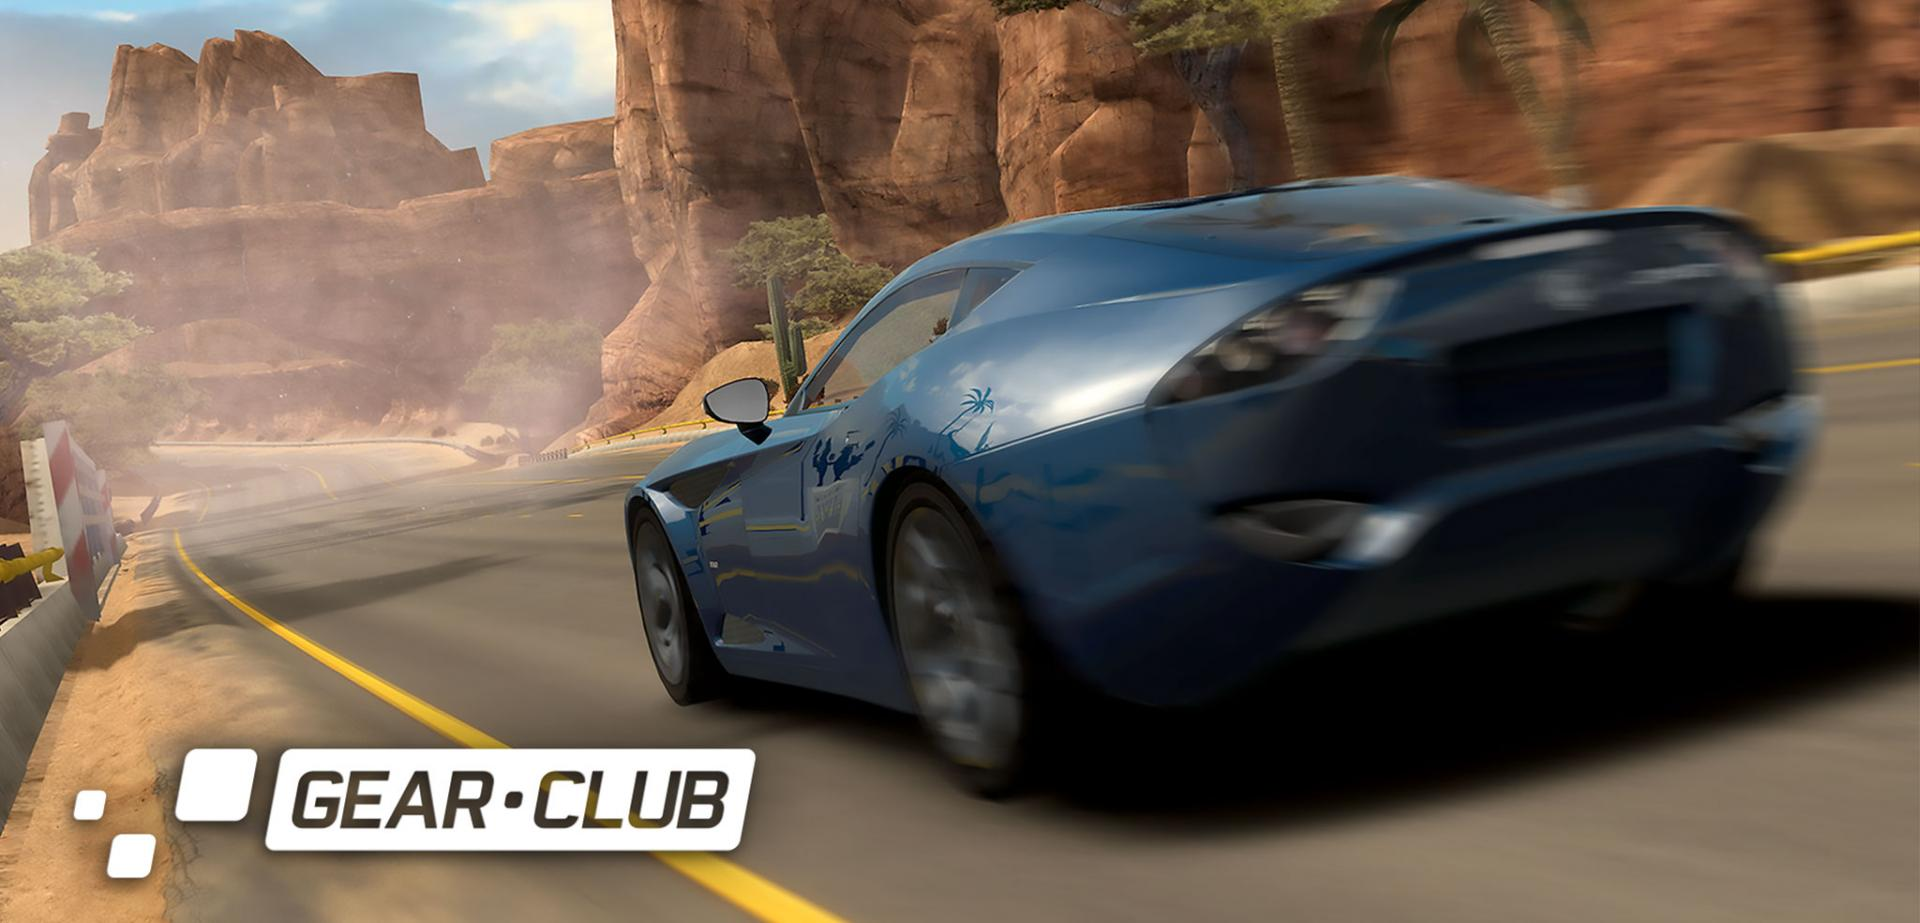 Gear Club Unlimited review